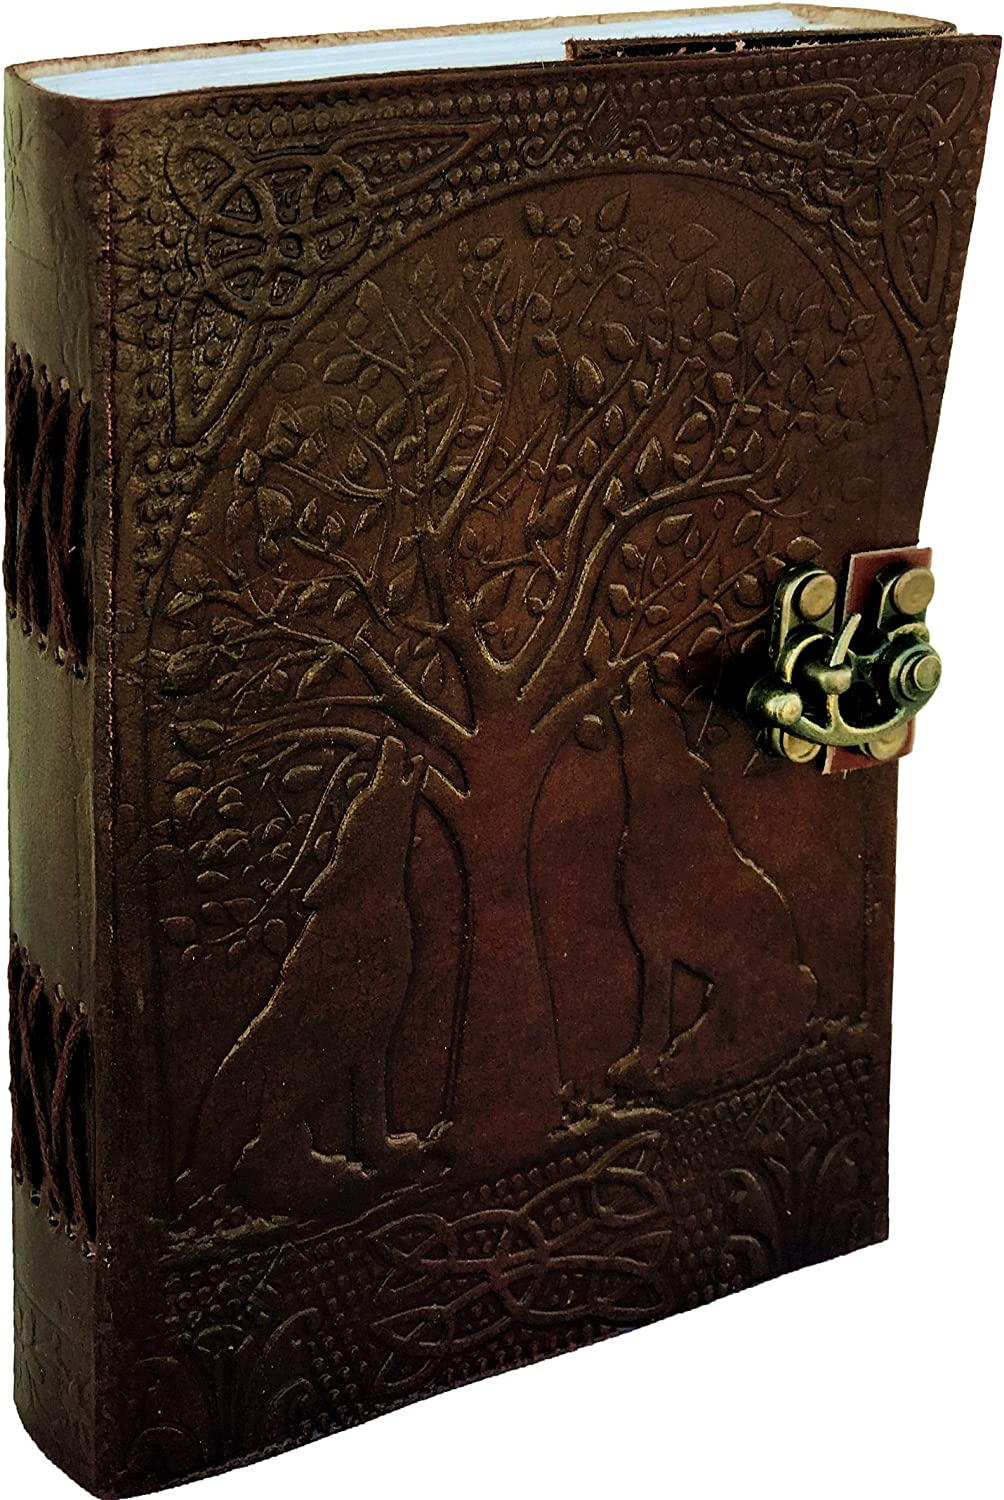 Genuine Handmade Leather Journal Wolf Embossed Diary for Men Women Gift Travel Office Journal | 200 Pages 5 x 7 Inches